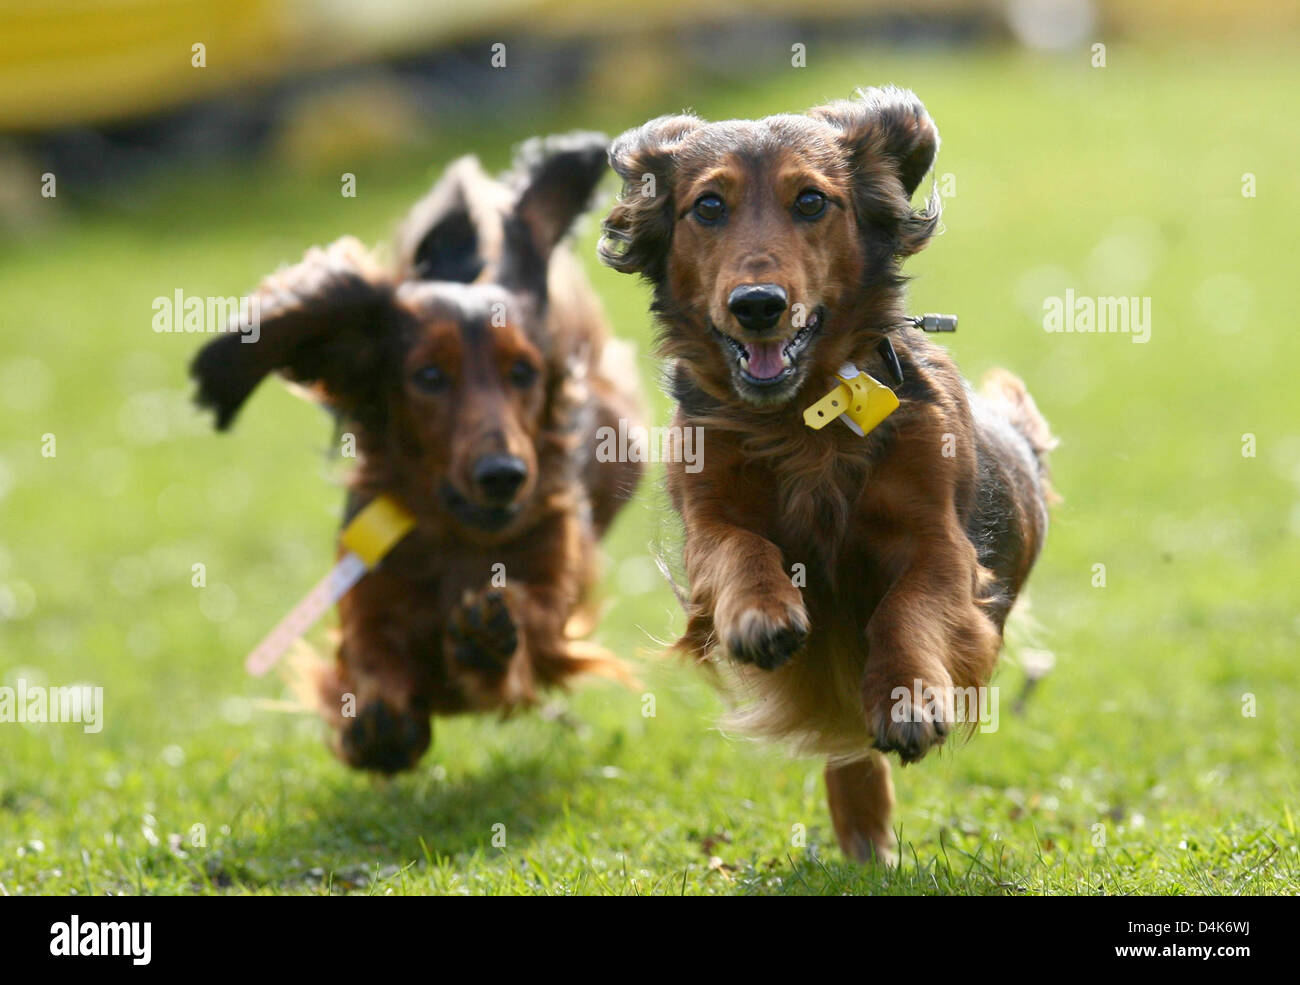 Dachshunds compete for the ?Golden Sausage of Itzehoe? at the 3rd Itzeho Dachshund Race in Itzehoe, Germany, 05 - Stock Image